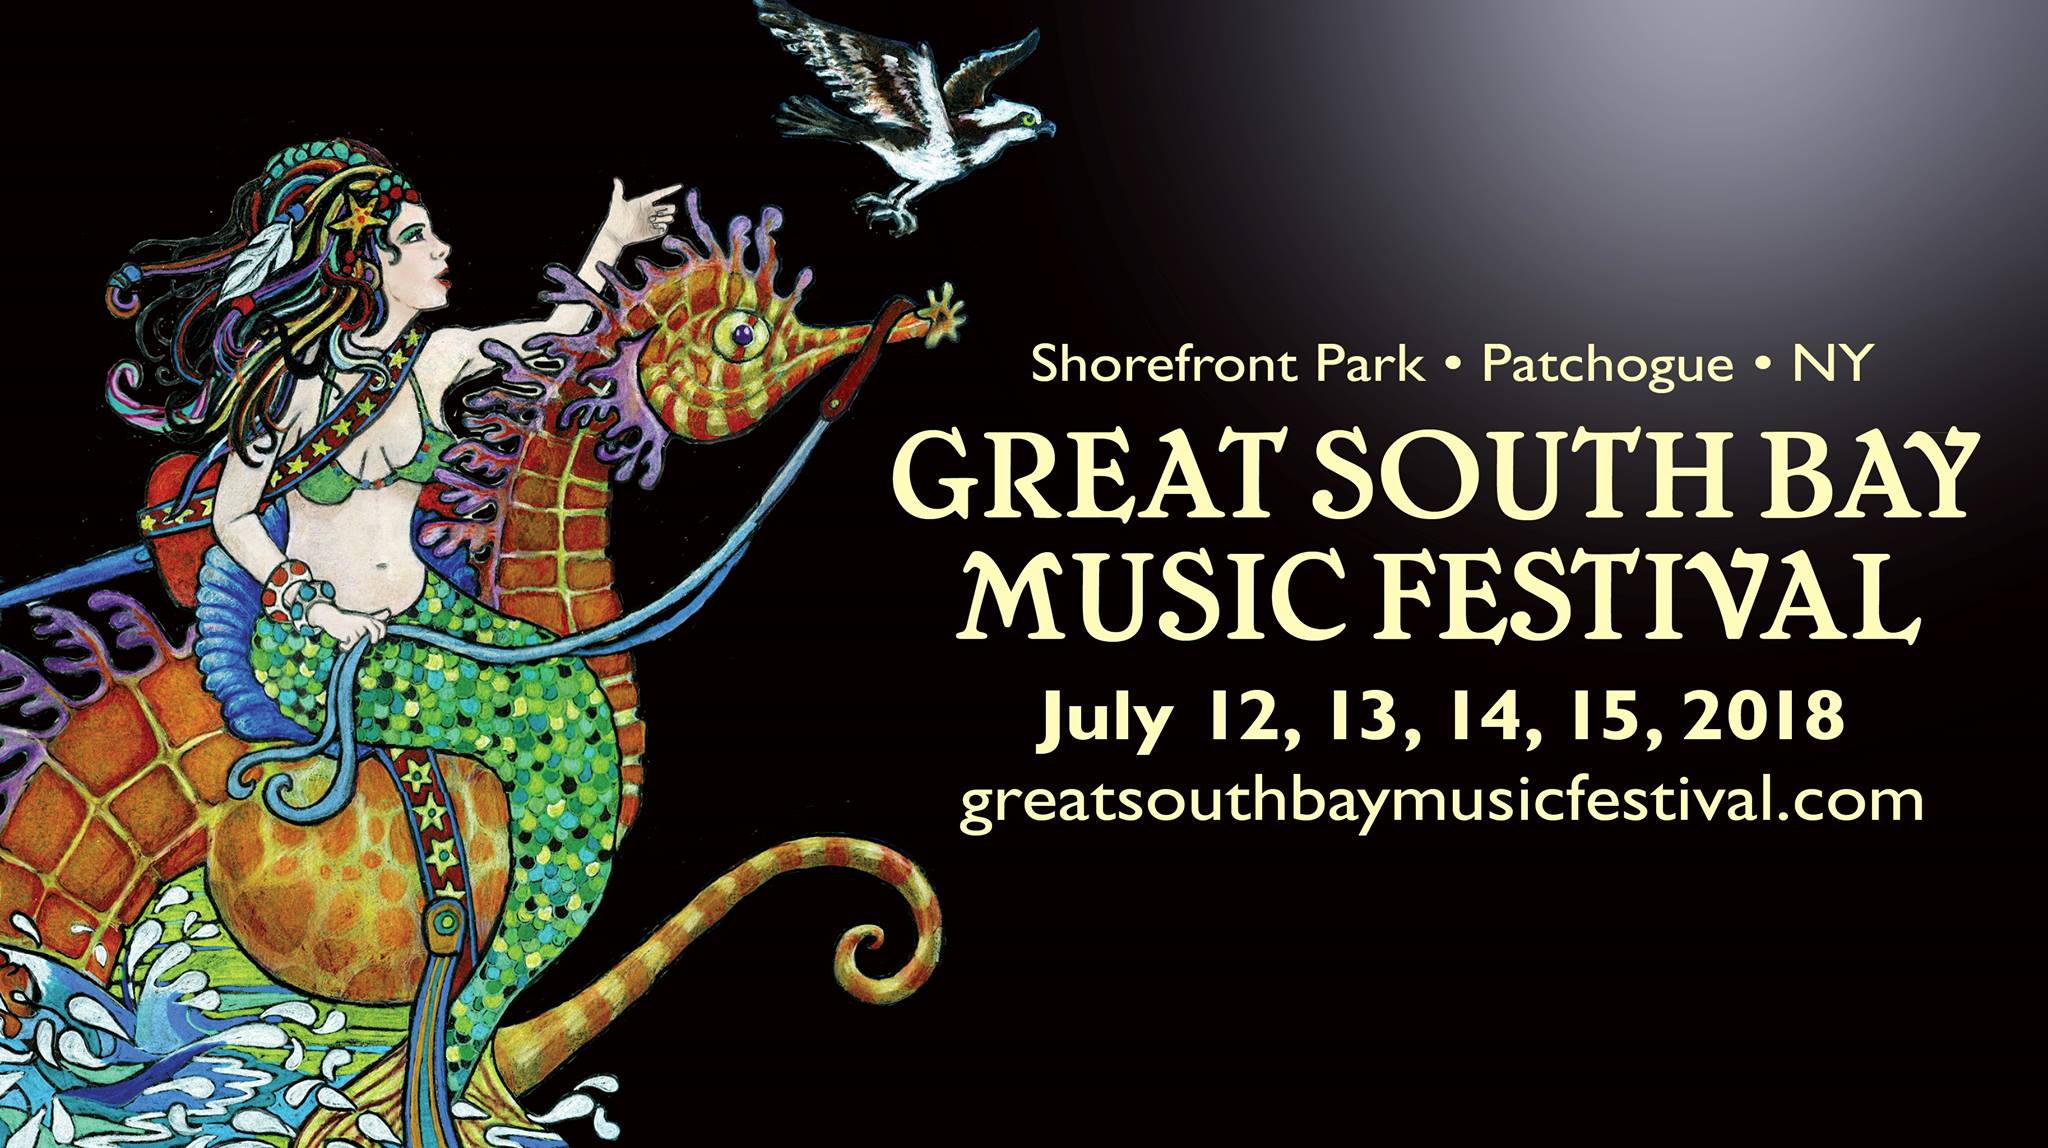 Great South Bay Music Festival 2018 Lineup